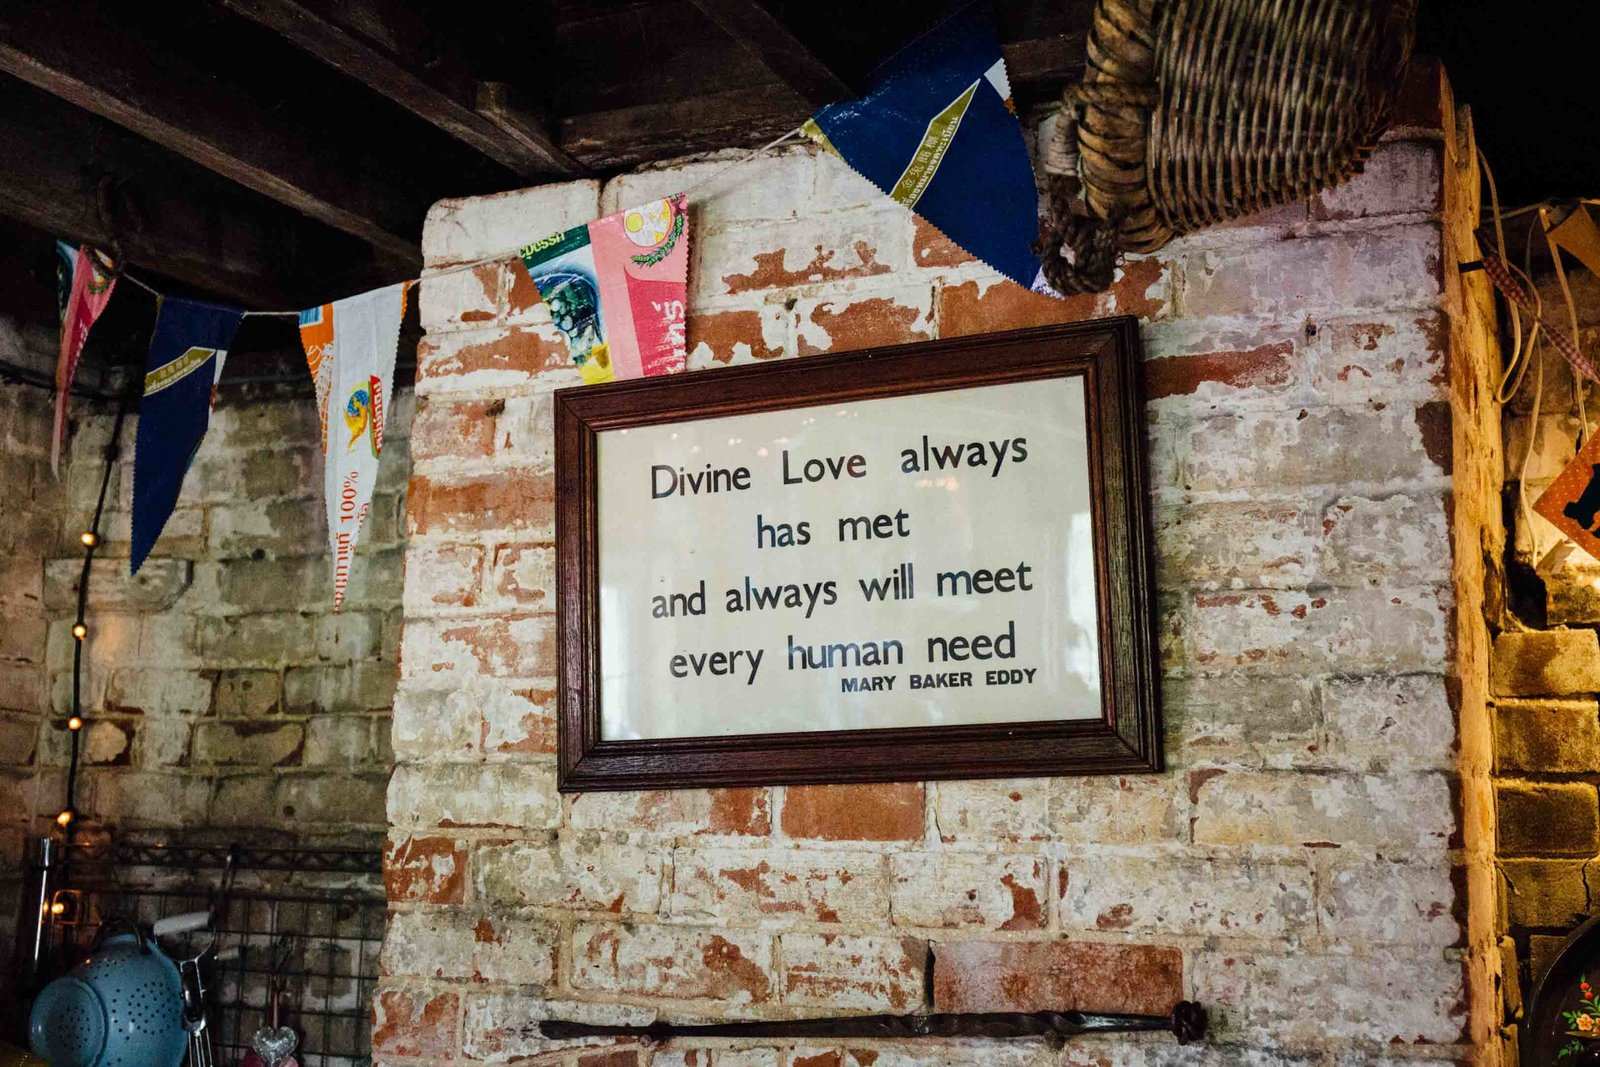 Divine Love quote framed on the wall in the rustic barn at The Keeper and The Dell, Norfolk